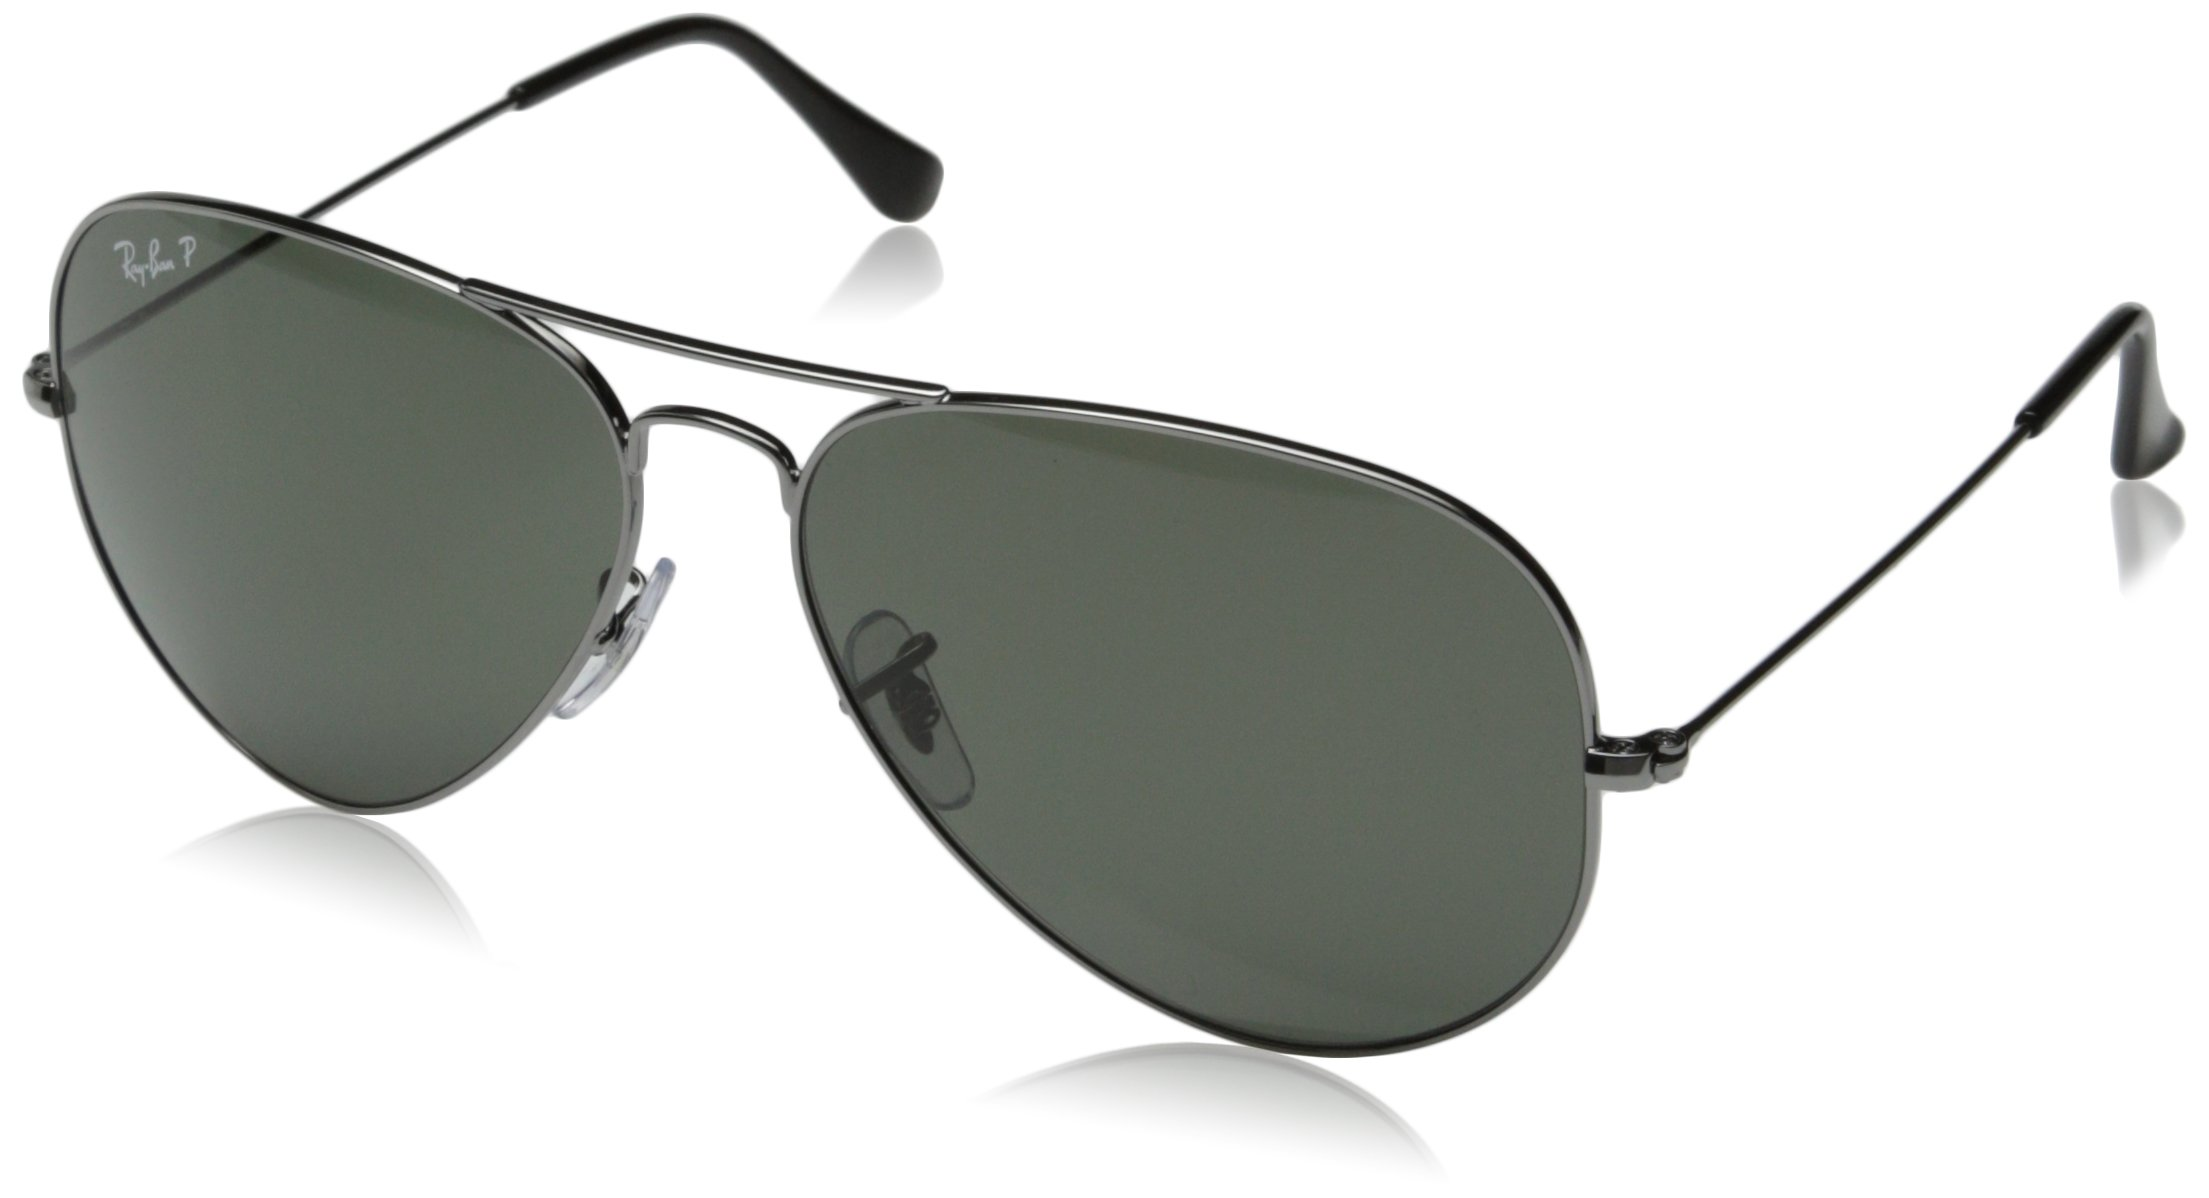 Ray-Ban AVIATOR LARGE METAL - GUNMETAL Frame CRYSTAL GREEN POLARIZED Lenses 62mm Polarized by Ray-Ban